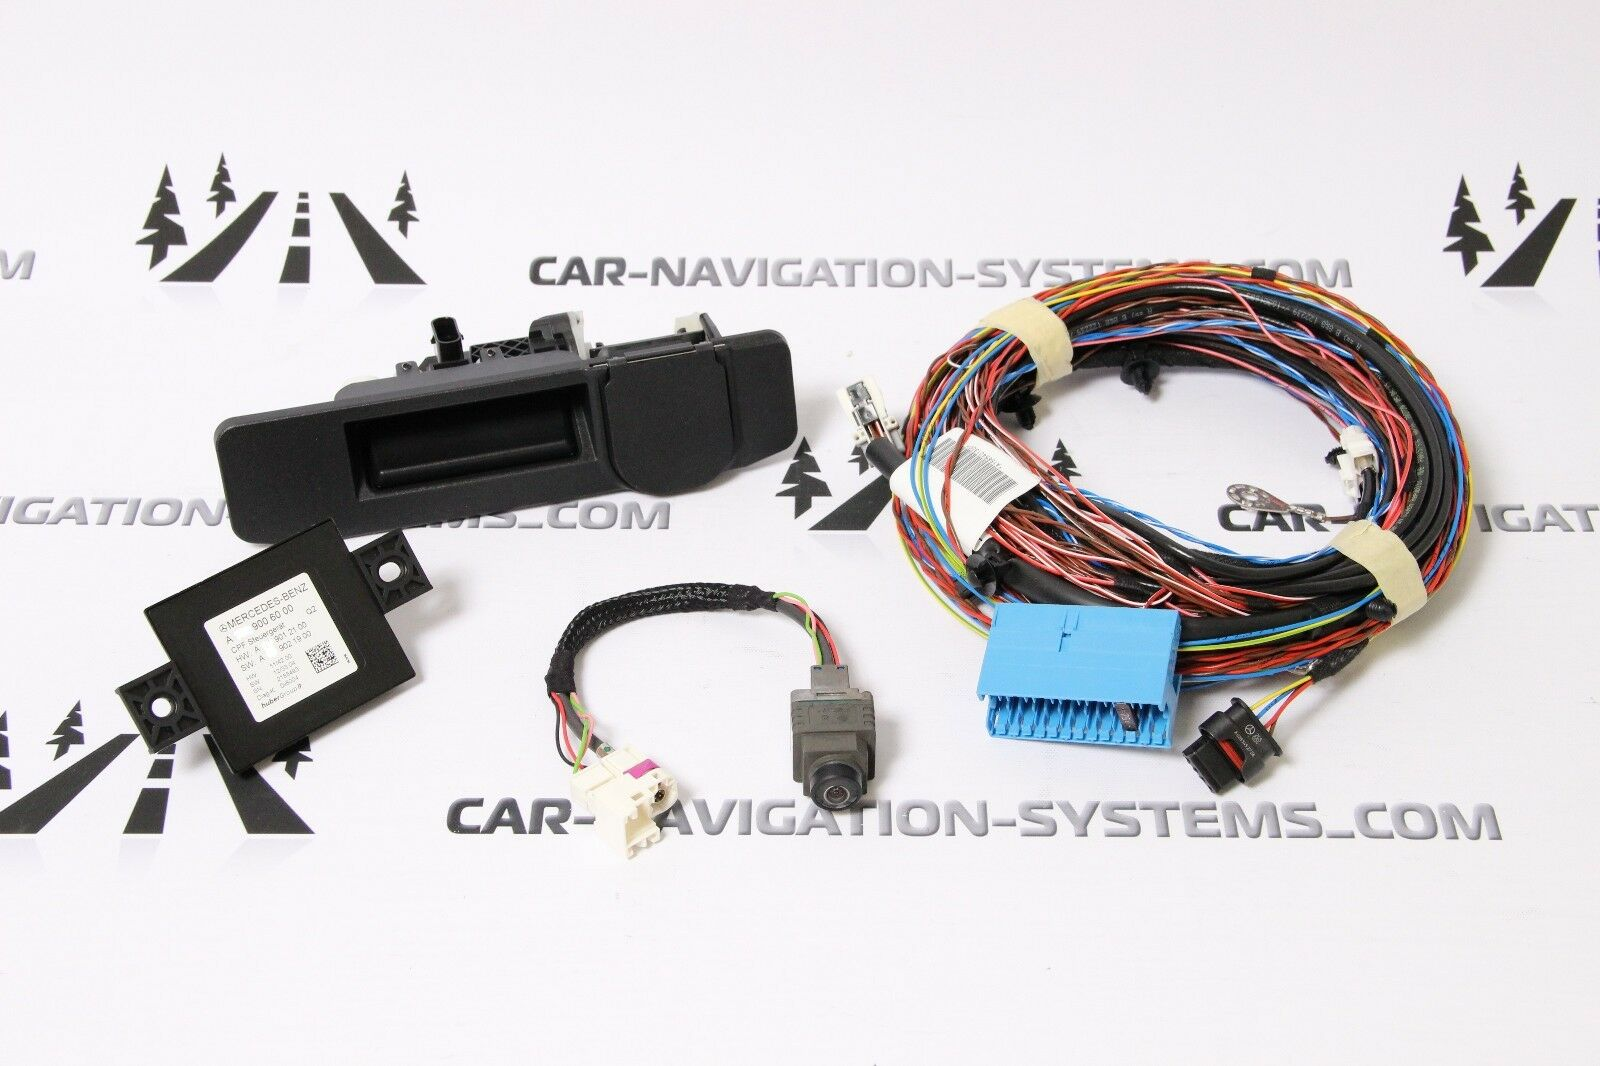 MERCEDES MB C Class W205 Original Rear View Camera Retrofit Kit